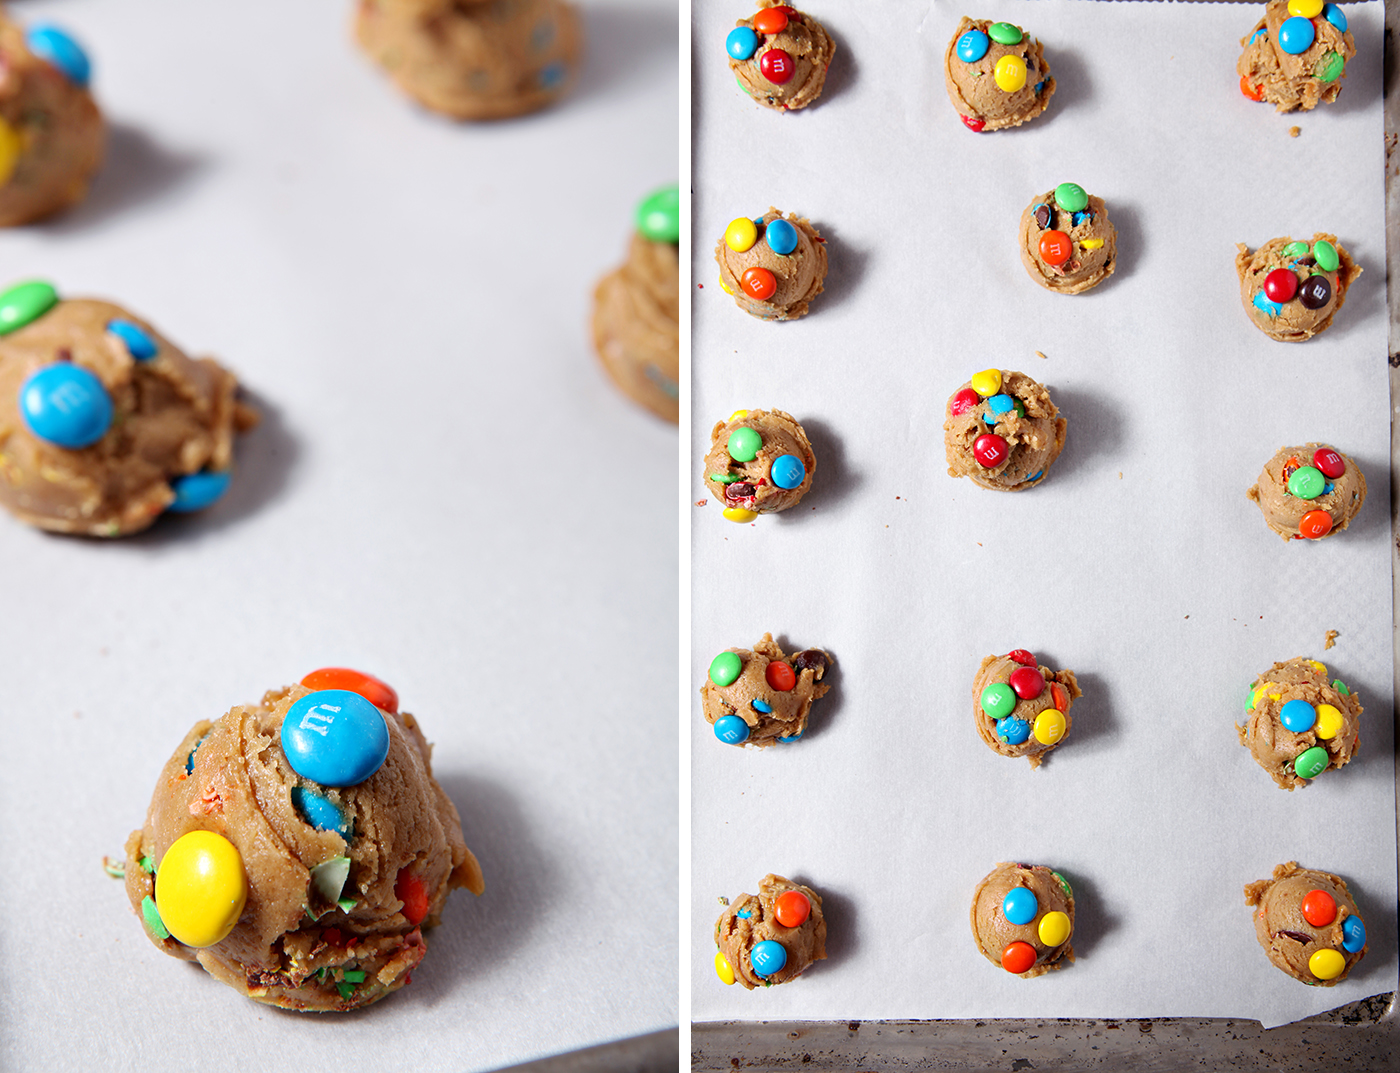 These M&M Cookies are the perfect dessert! The miniature sugar cookies are sweet, fluffy and chock full of plain M&M's. @speckledpalate for @mycookingspot